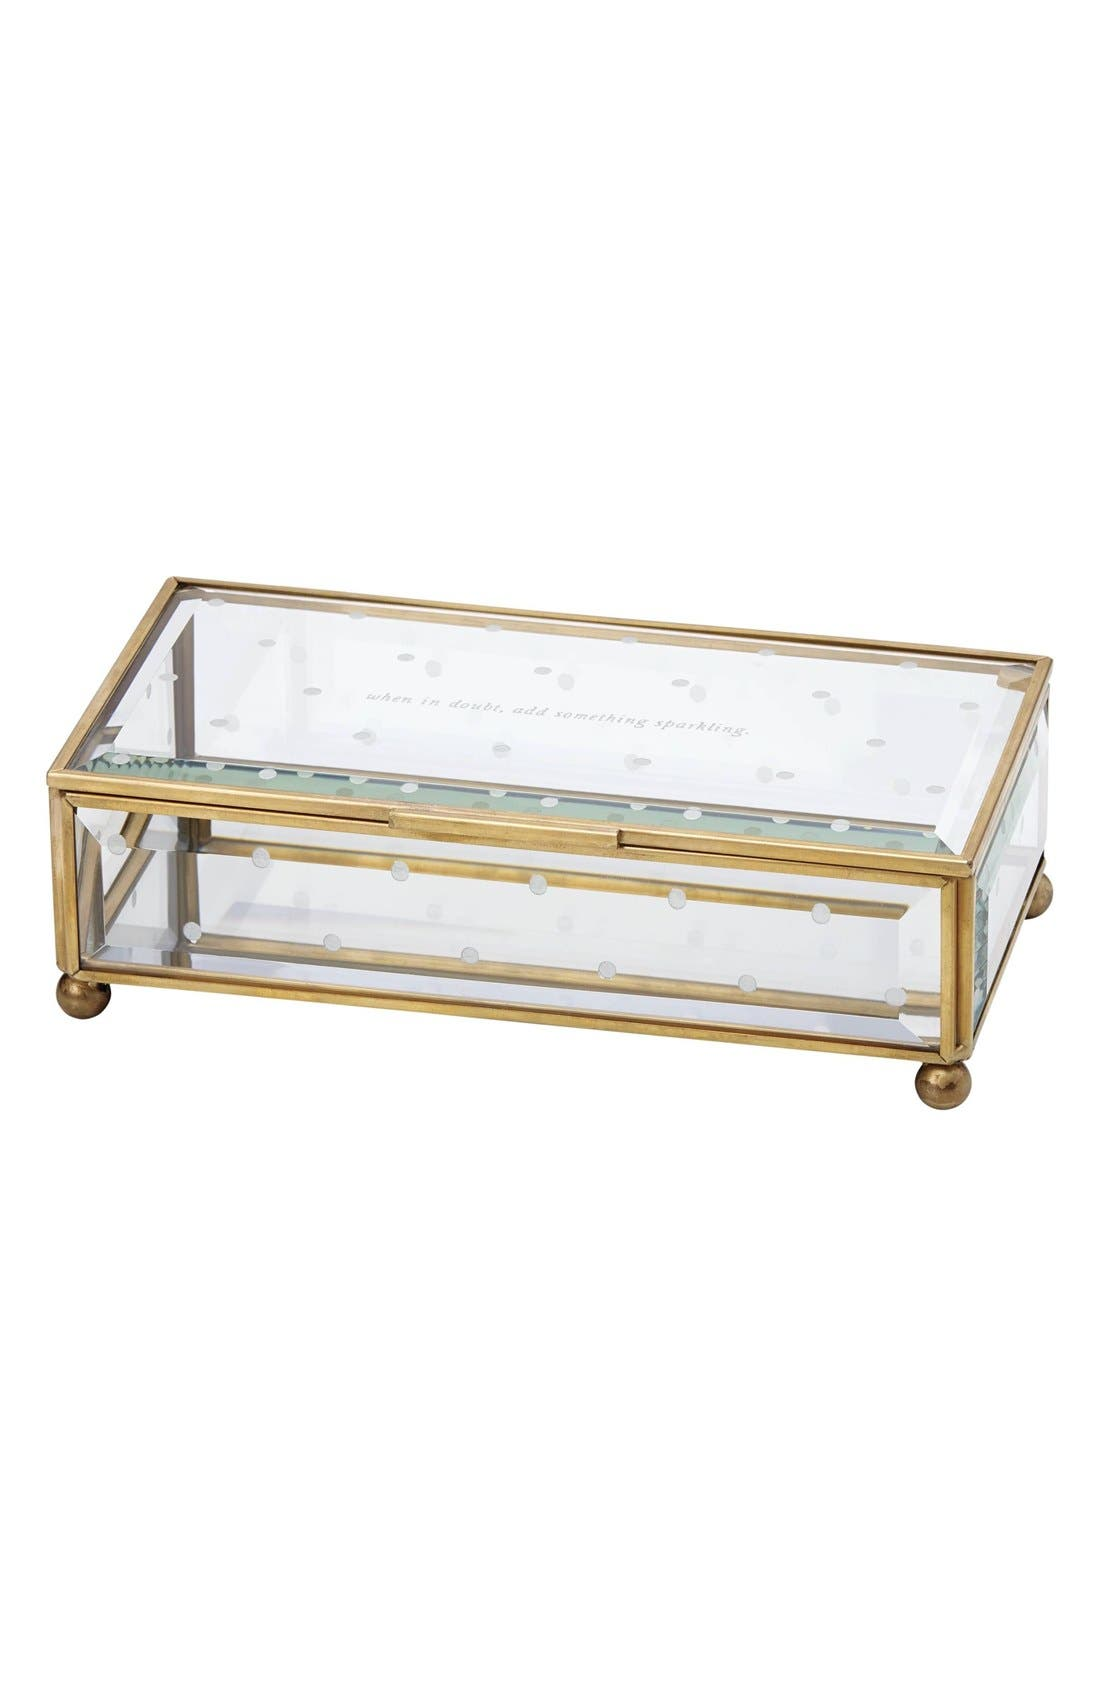 kate spade new york 'when in doubt, add something sparkling' glass jewelry box